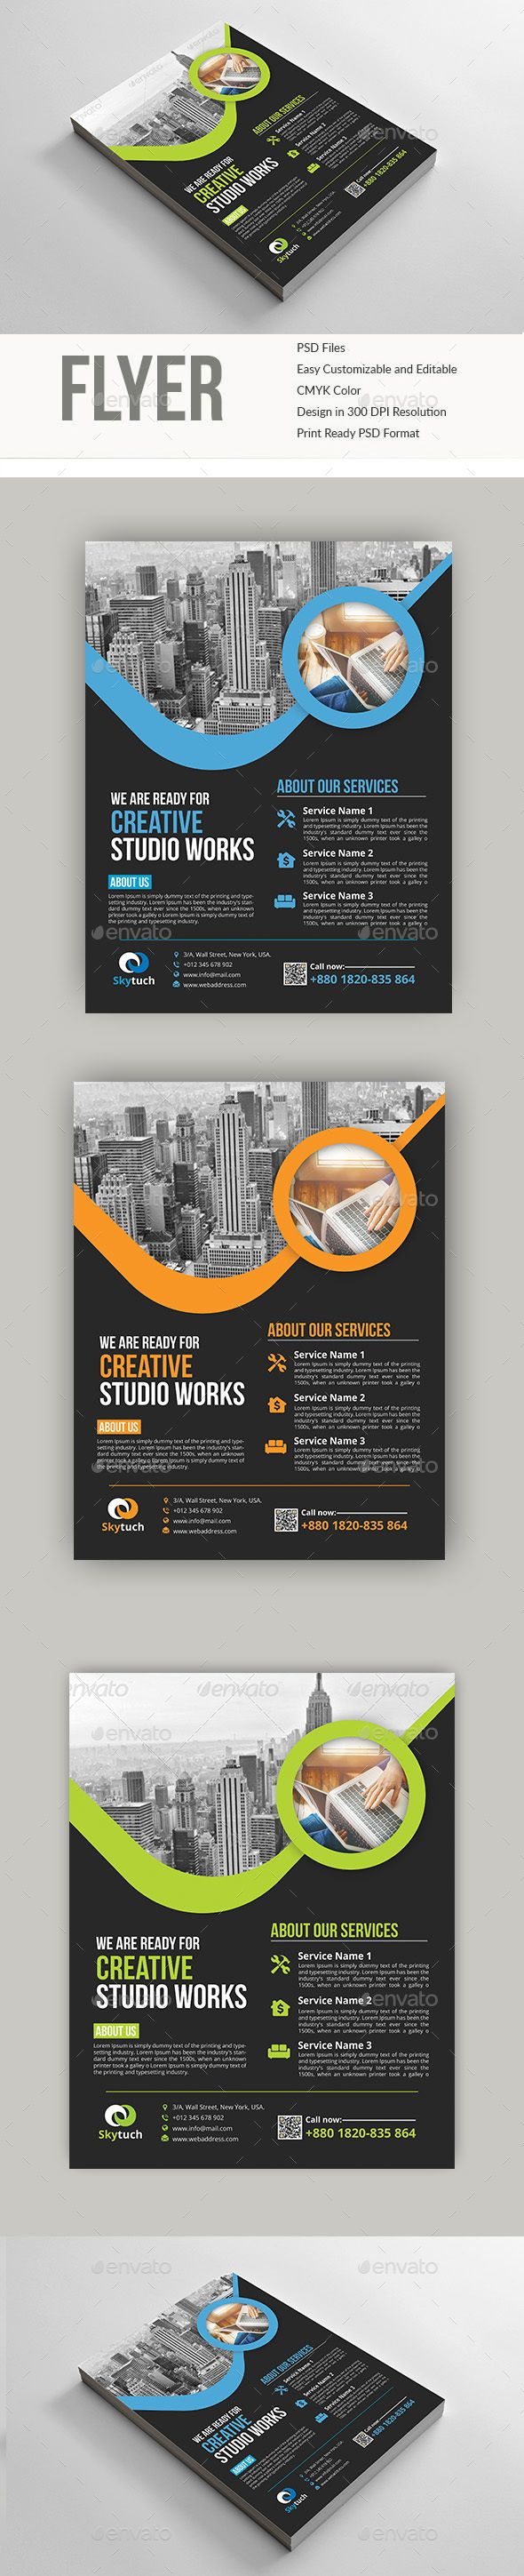 165 best flyer templates designs images on pinterest flyer flyer a great creative certificate template for creative person features easy to edit cmyk yelopaper Image collections